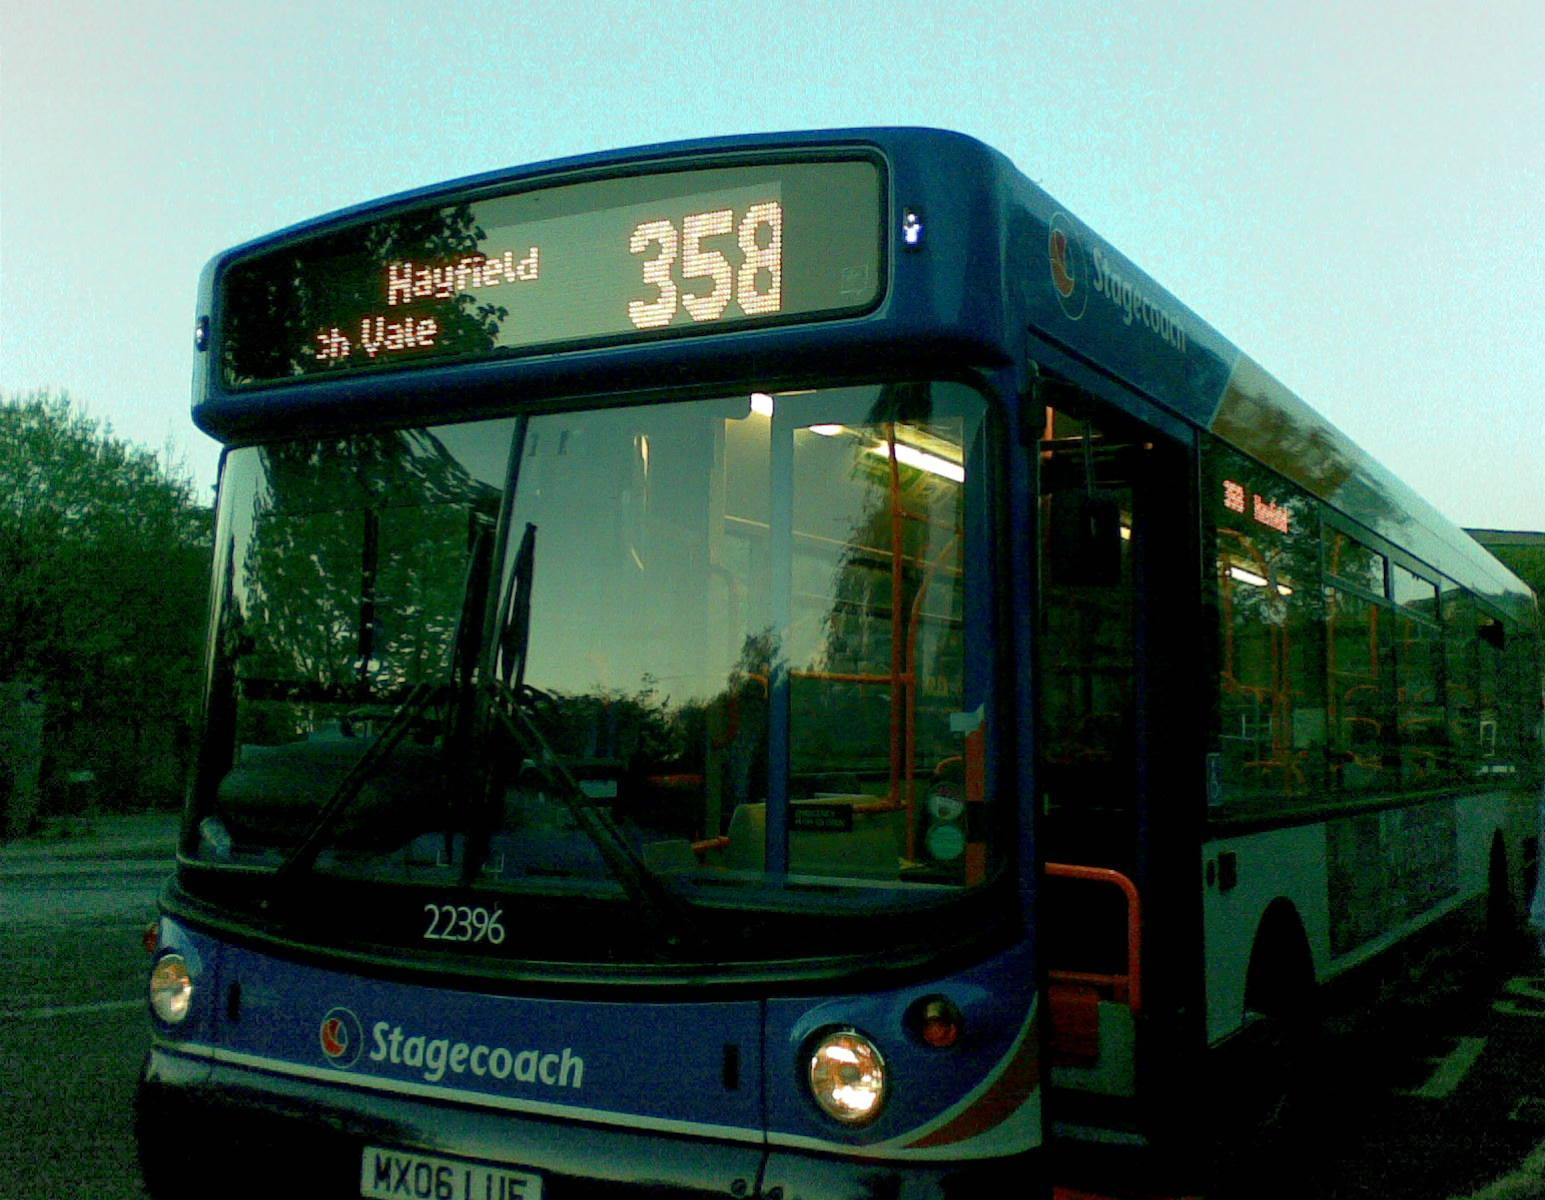 File:Derbyshire 358 bus.jpg